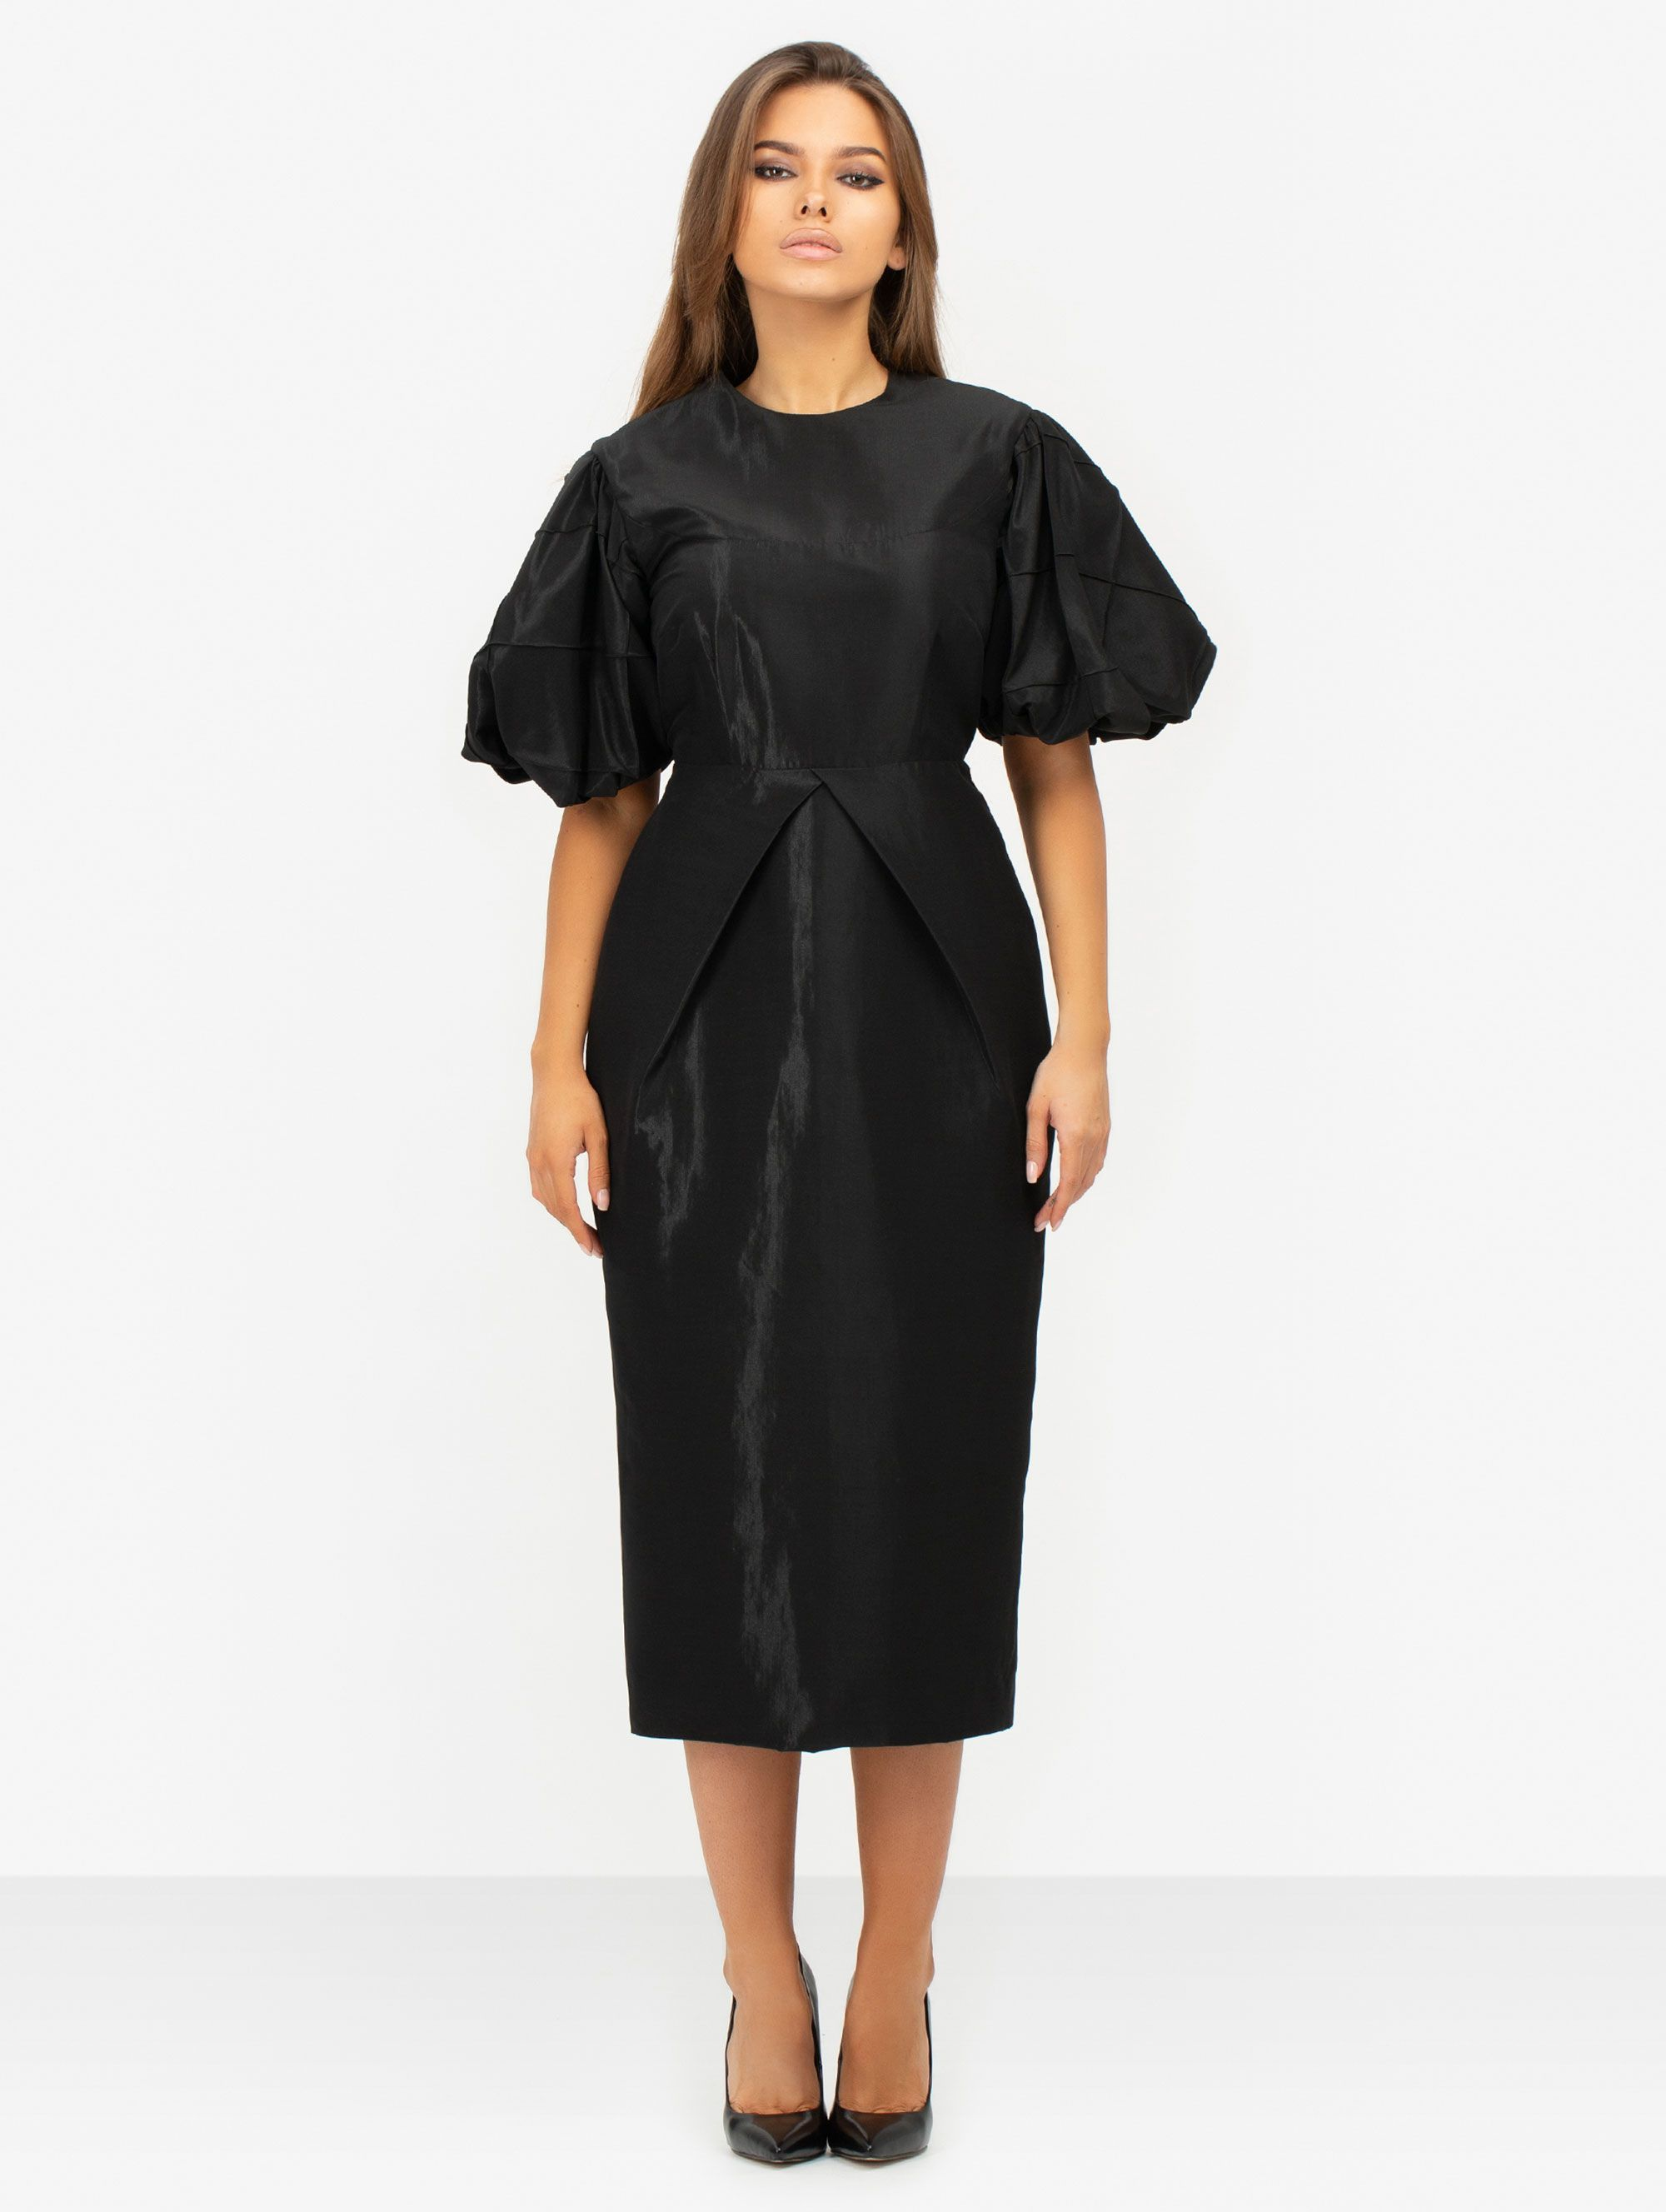 Masterpiece Black Midi Dress